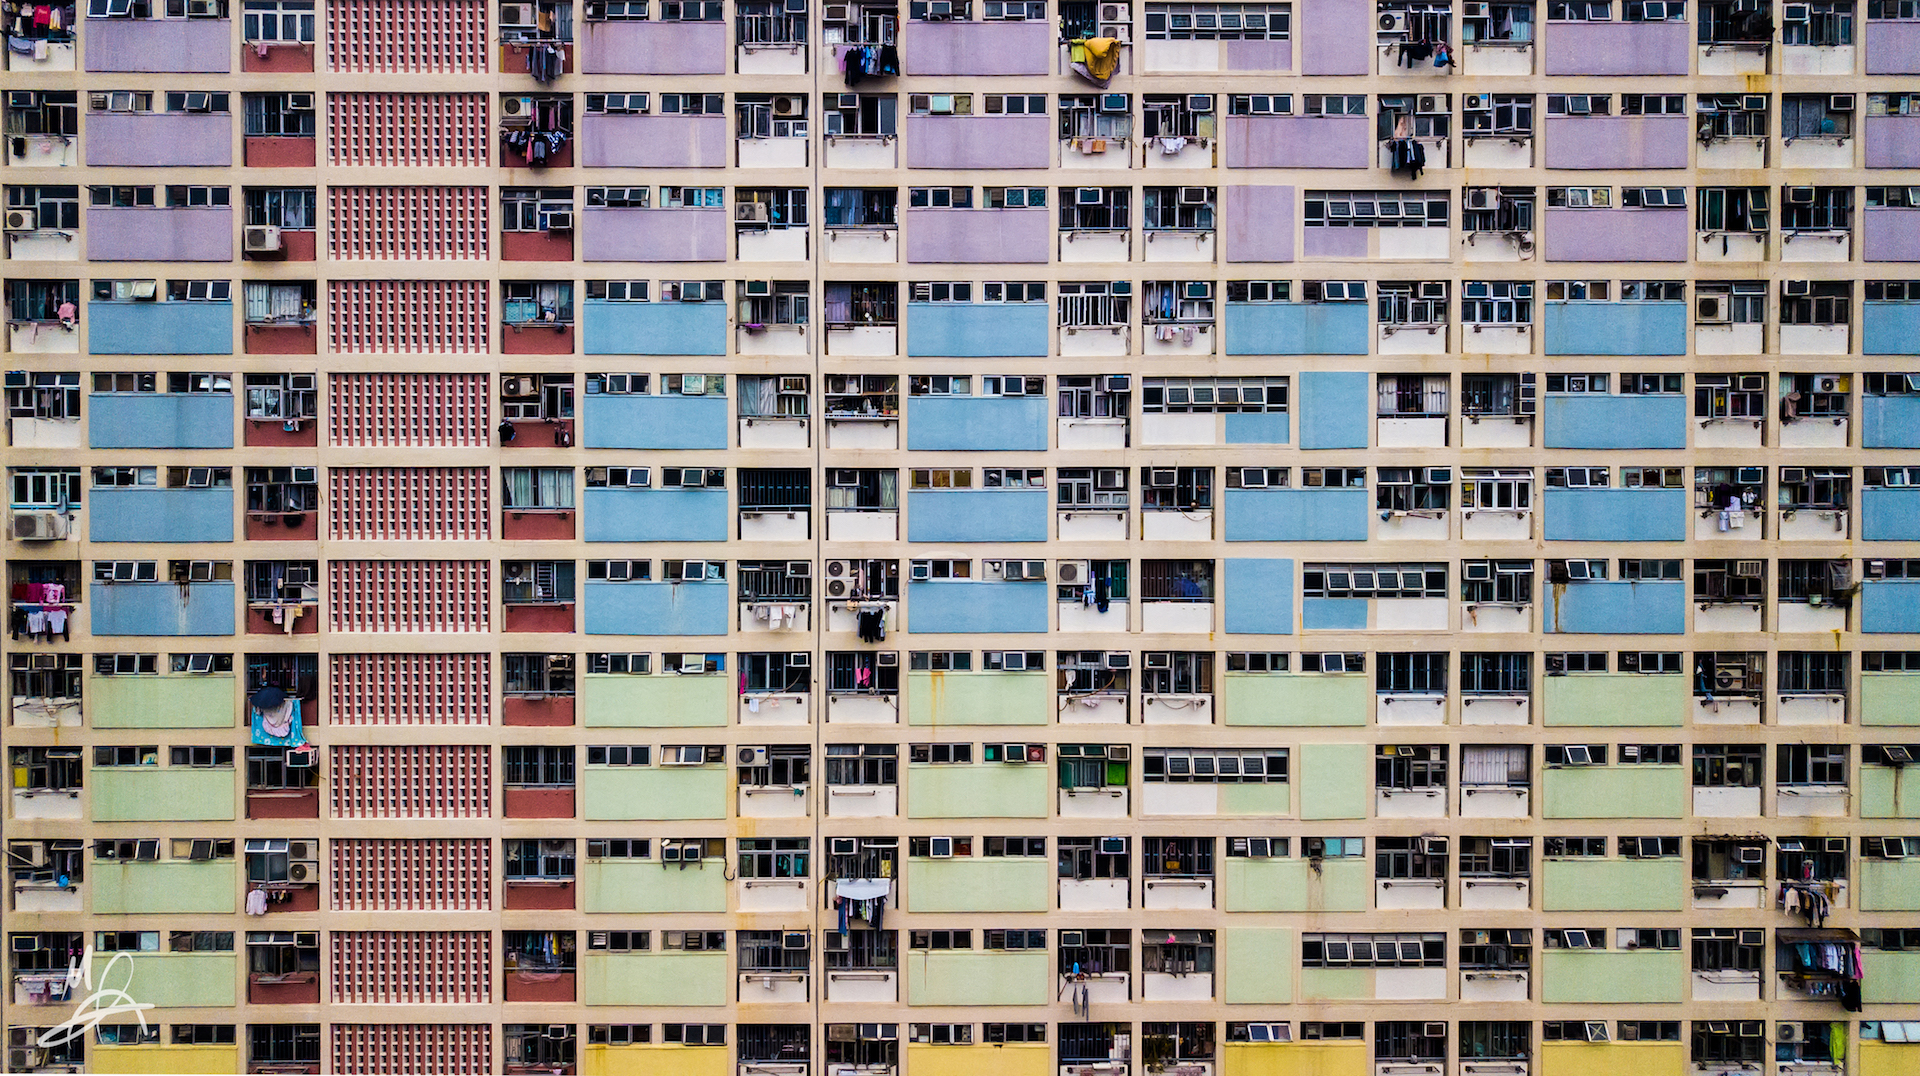 Hong Kong public housing estate - landscape 2/5